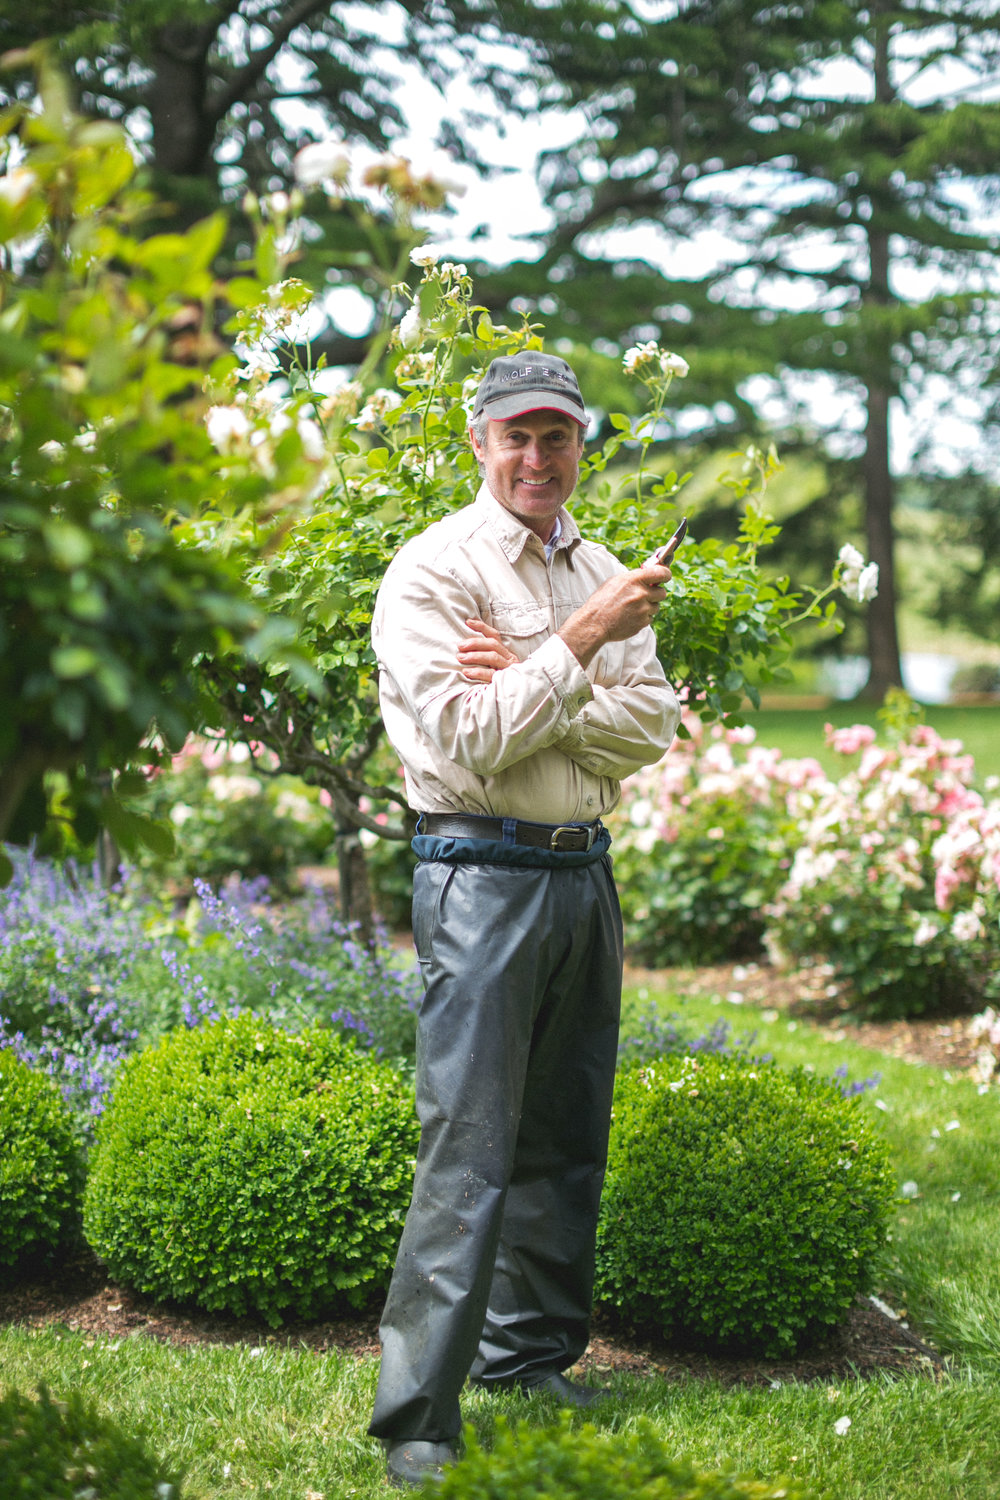 Chris and I got chatting over the roses. There was to be a wedding in the garden later today so he was doing final pruning and tidying up.